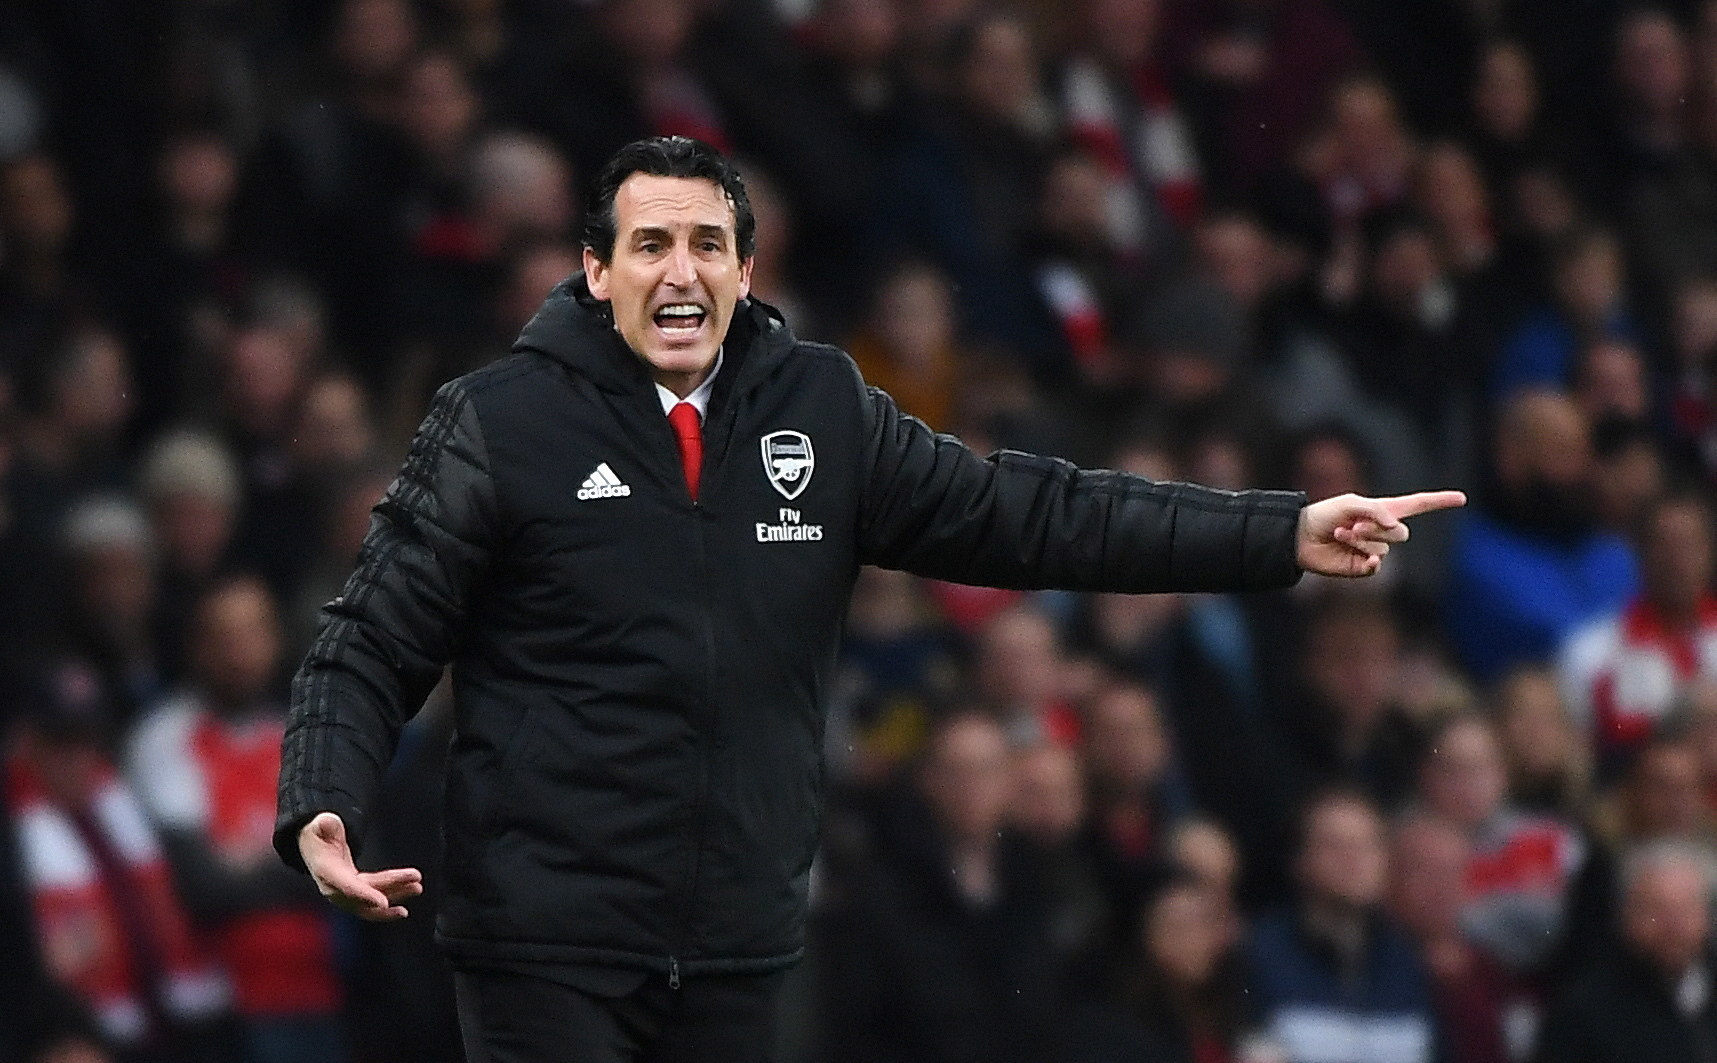 London (United Kingdom), 23/11/2019.- Arsenals manager Unai <HIT>Emery</HIT> reacts during the English Premier League soccer match between Arsenal and Southampton in London, Britain, 23 November 2019. (Reino Unido, Londres) EFE/EPA/ANDY RAIN EDITORIAL USE ONLY. No use with unauthorized audio, video, data, fixture lists, club/league logos or live services. Online in-match use limited to 120 images, no video emulation. No use in betting, games or single club/league/player publications